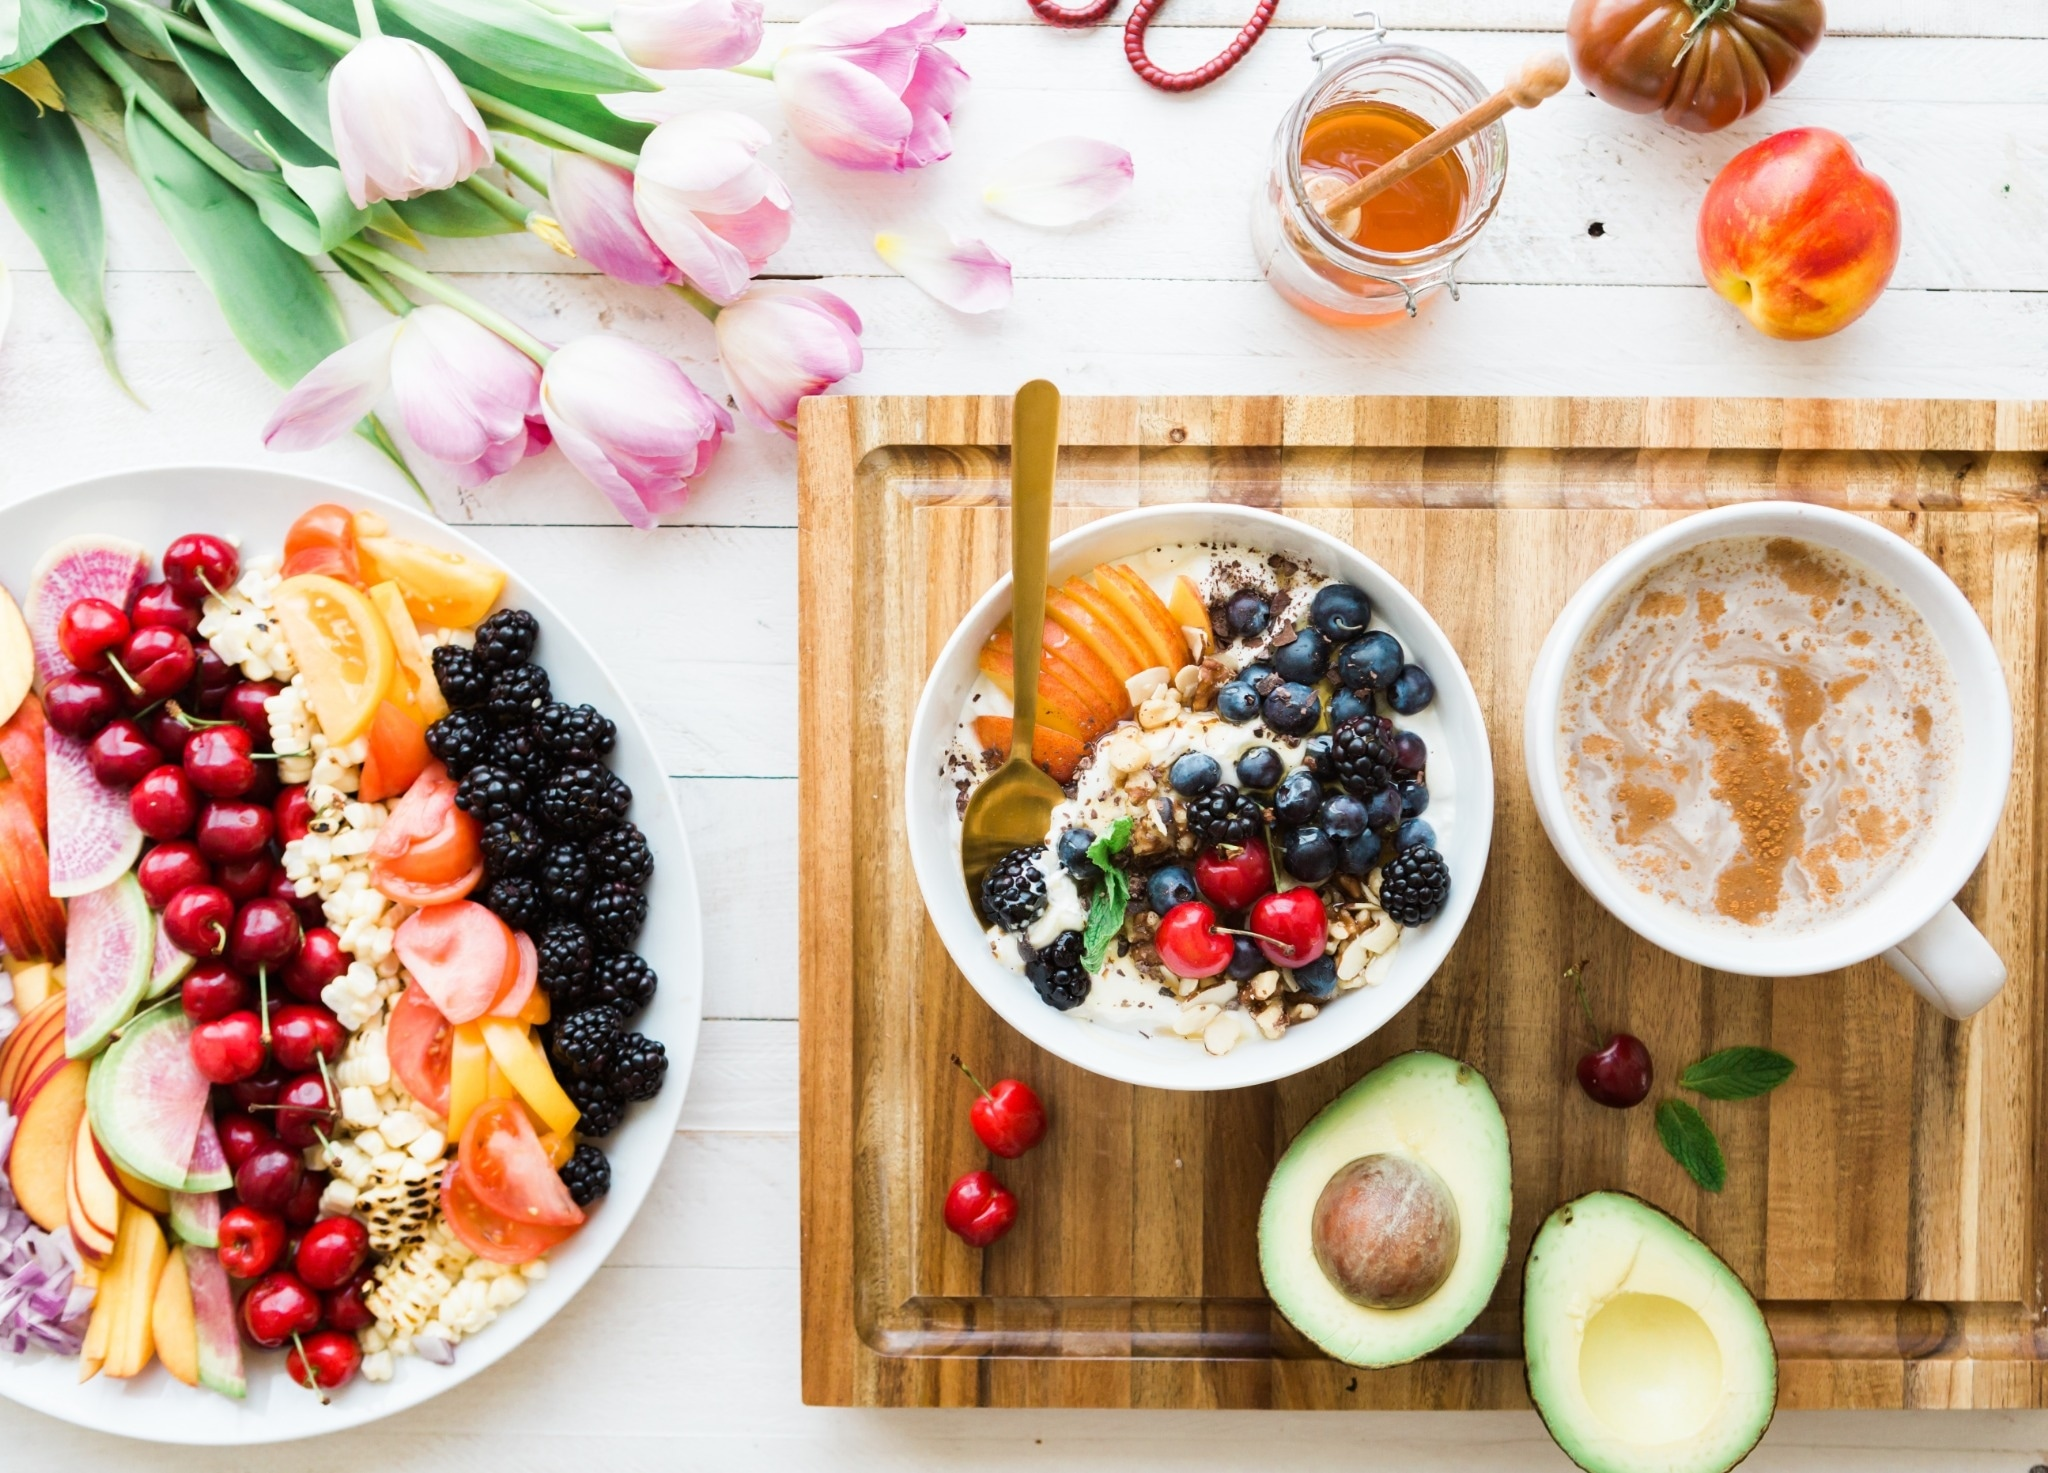 How Millennials Are Changing The Food Landscape: 2018 Millennial Food Habits Survey